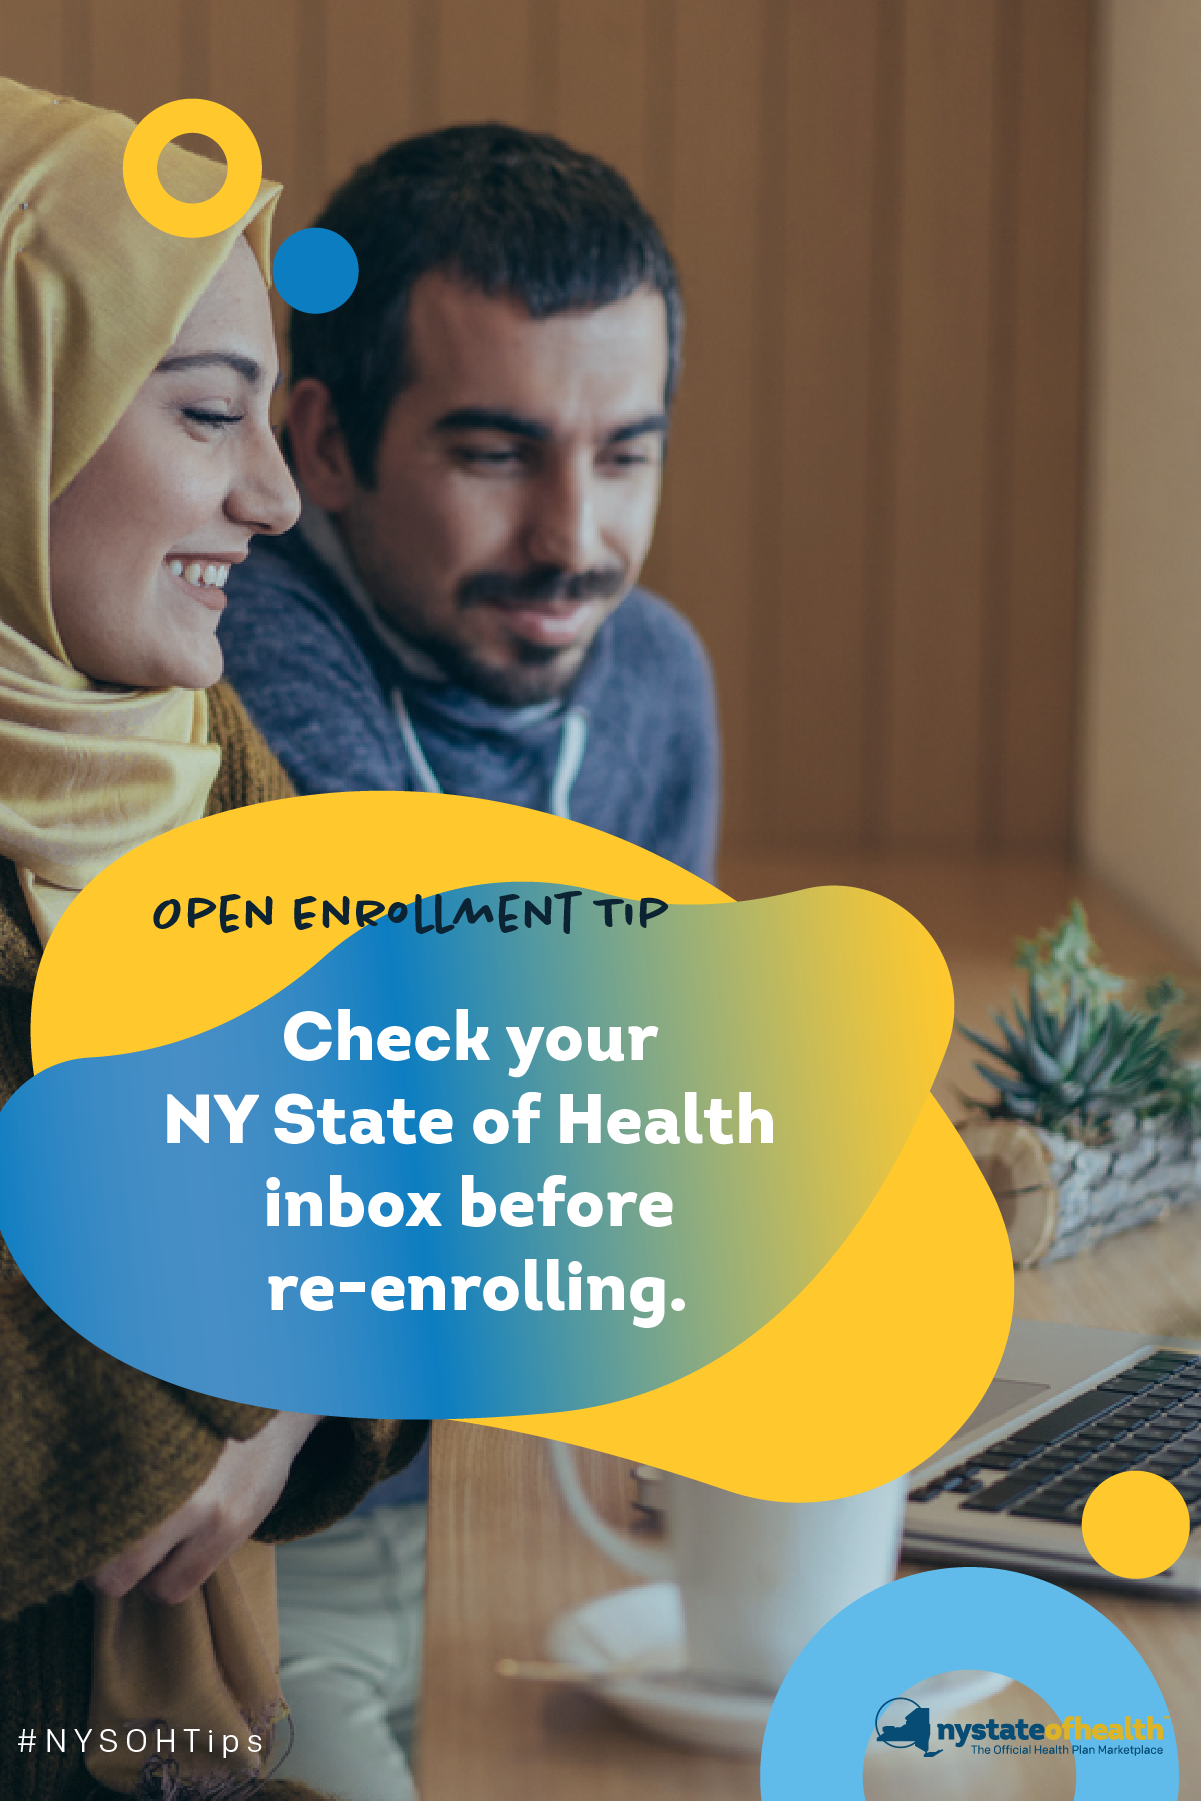 The Last Day Of Open Enrollment Is January 31 Check Your Ny State